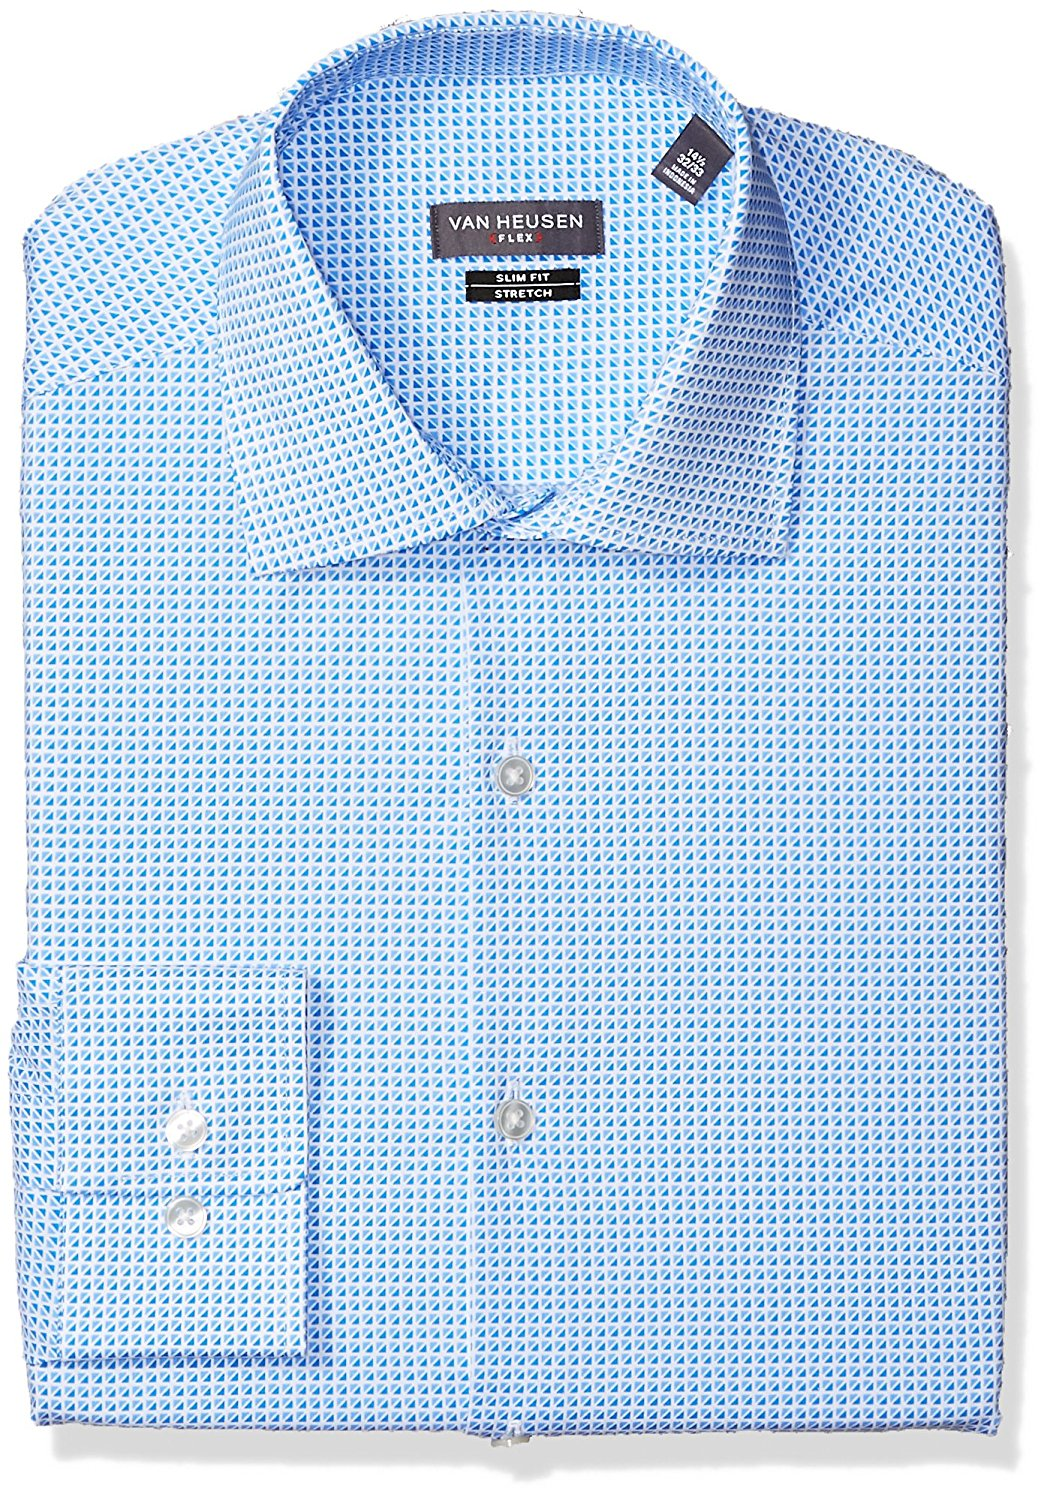 95cf0d0c5b8c Get Quotations · Van Heusen Men's Dress Shirt Flex Collar Slim Fit Print